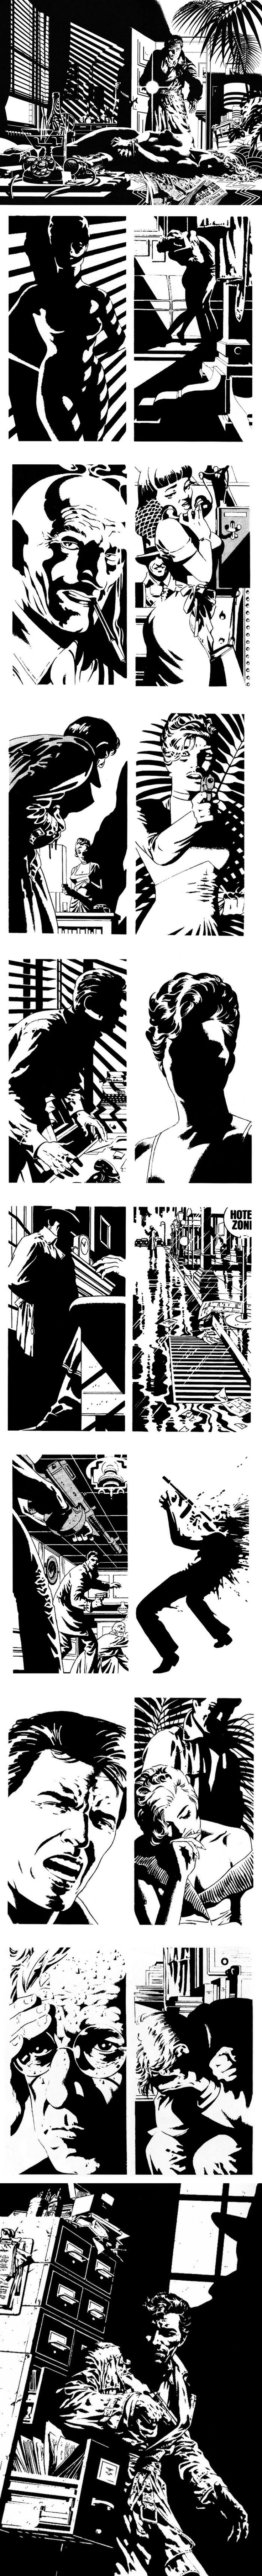 """Selection of panels and plates from Jim Steranko's Raymond Chandler story, """"Red Tide""""."""